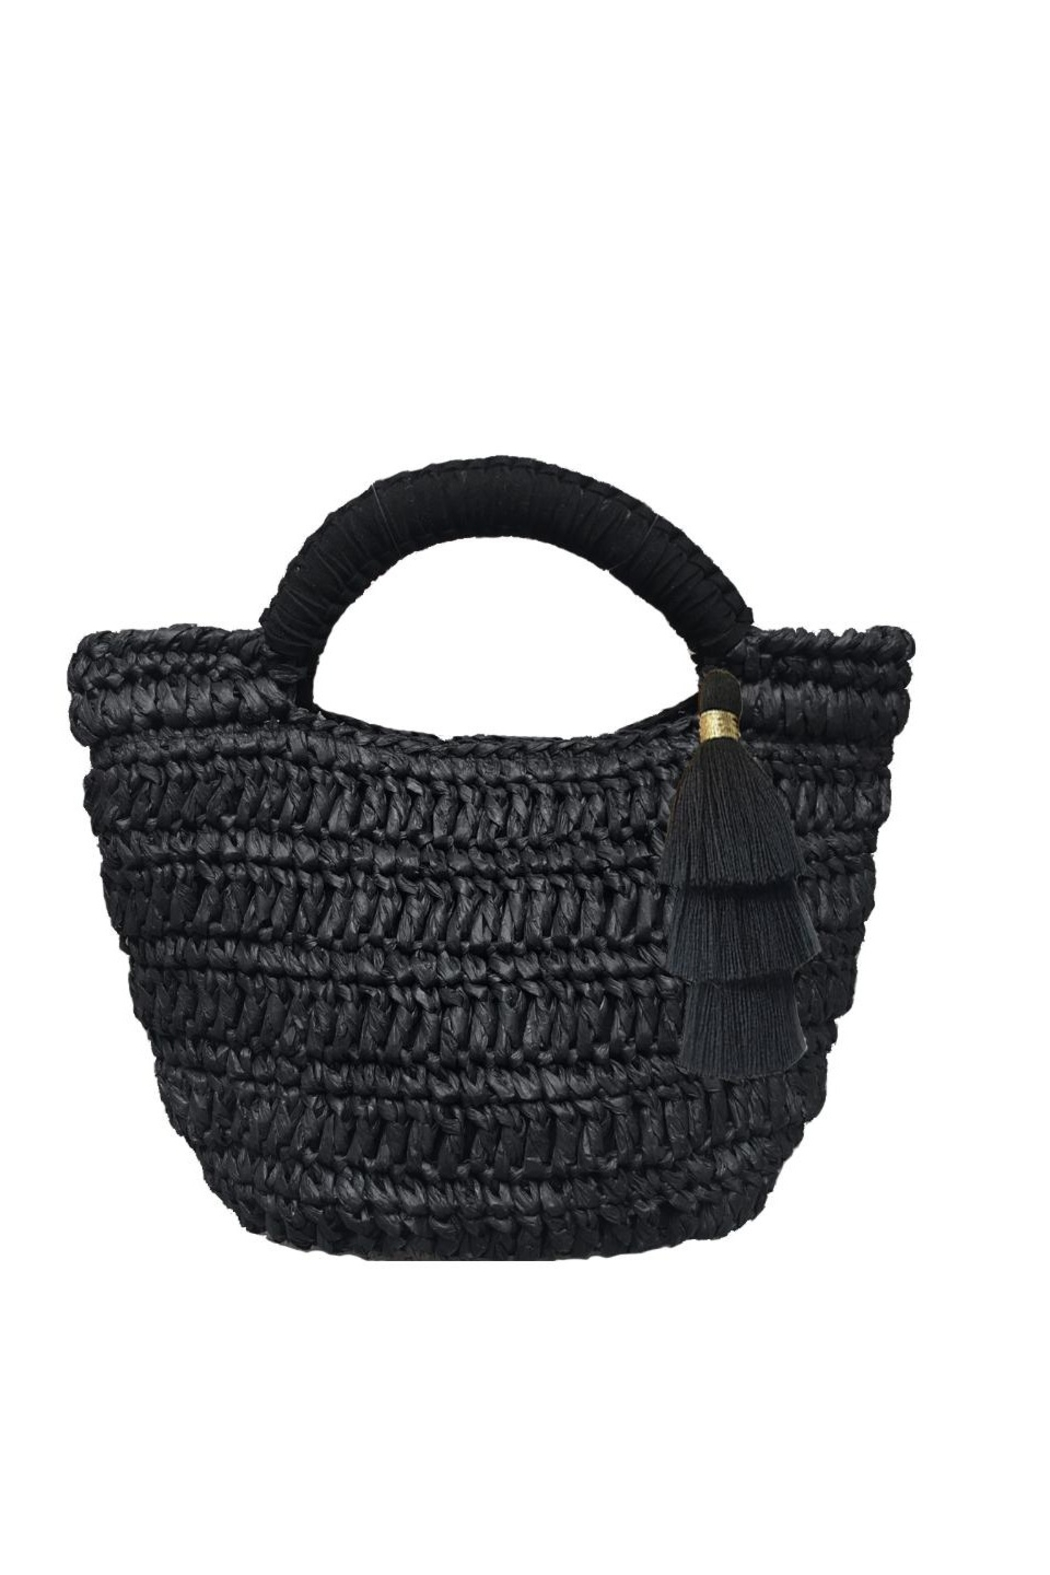 Fallon & Royce Maya Micro Mini Straw Bag - Main Image